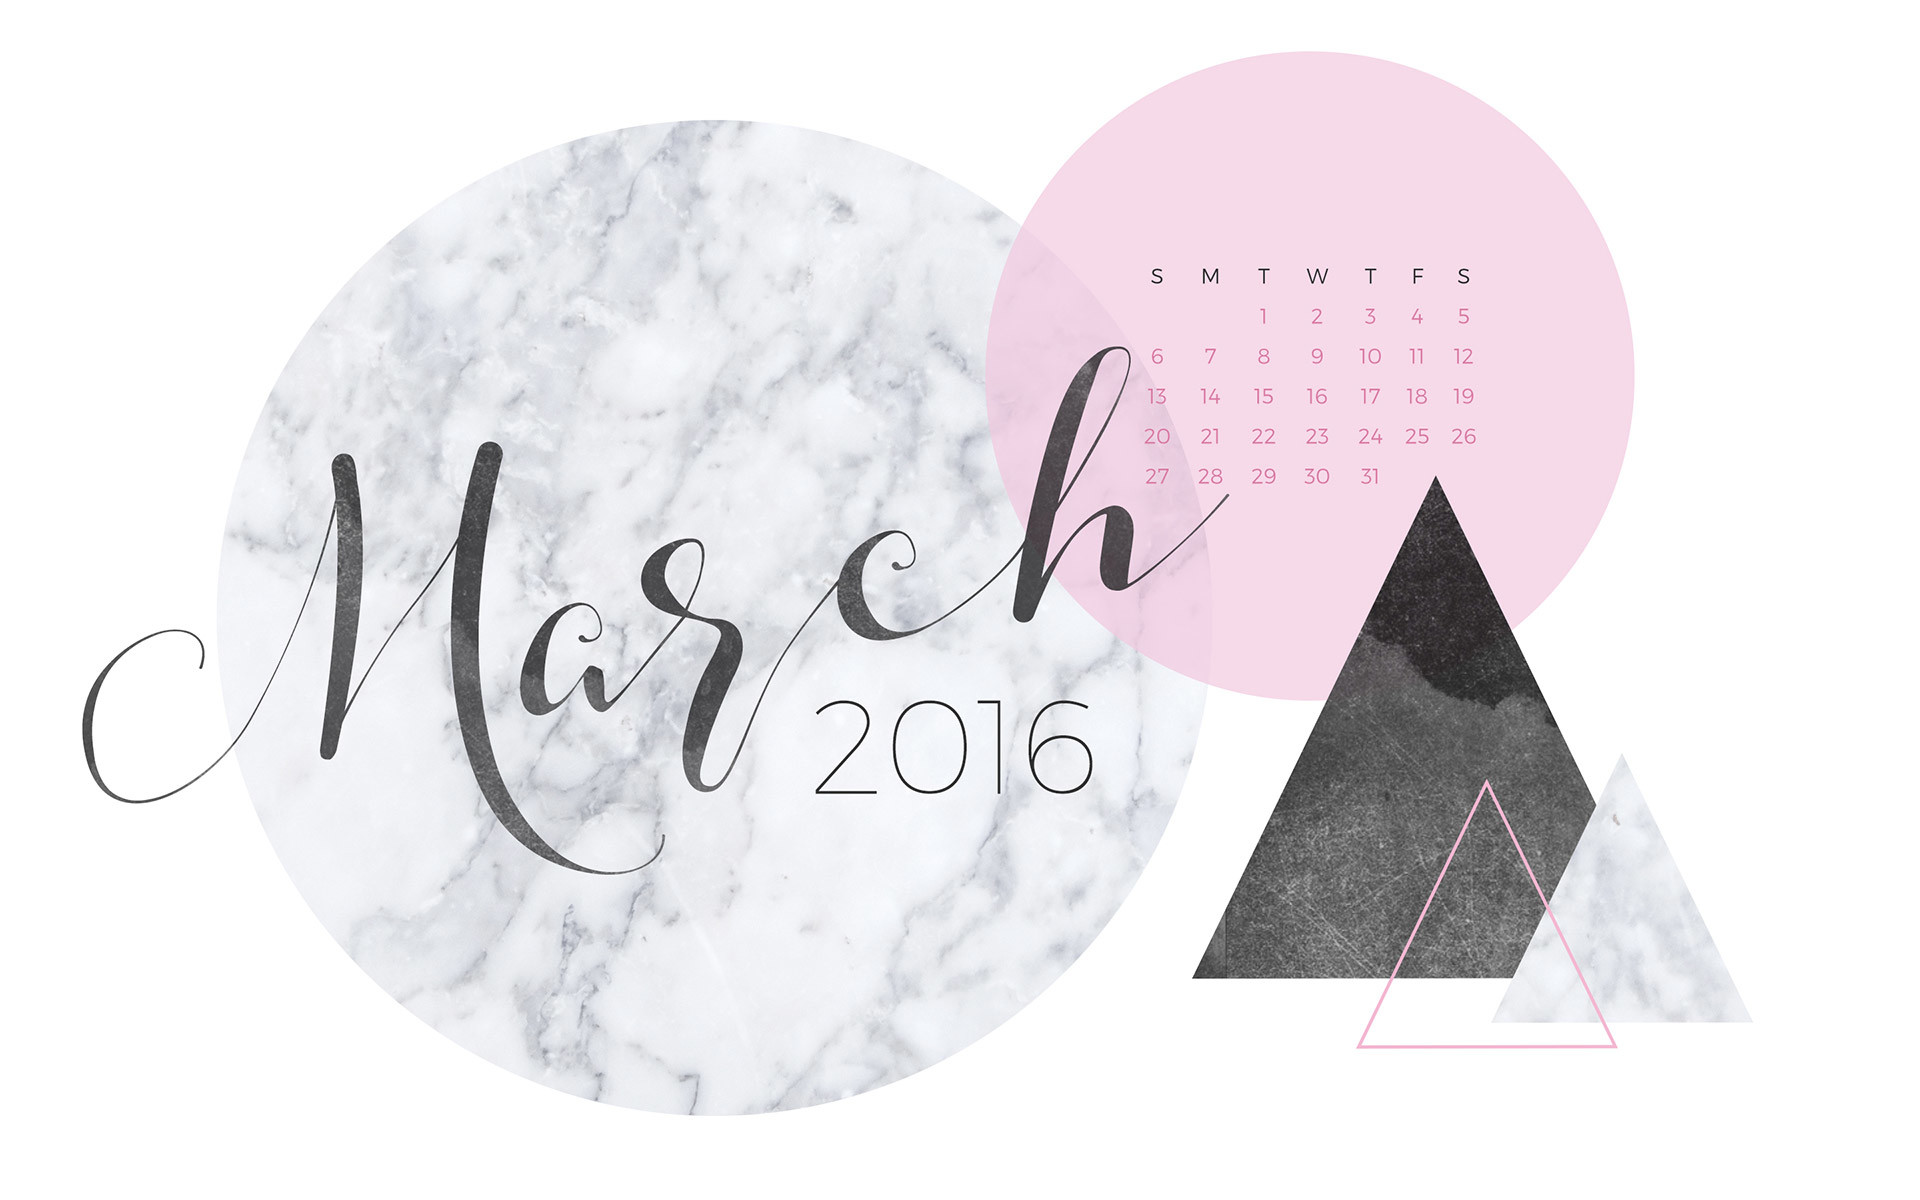 Because I'm currently obsessed and want everything to be marble patterned,  I figured